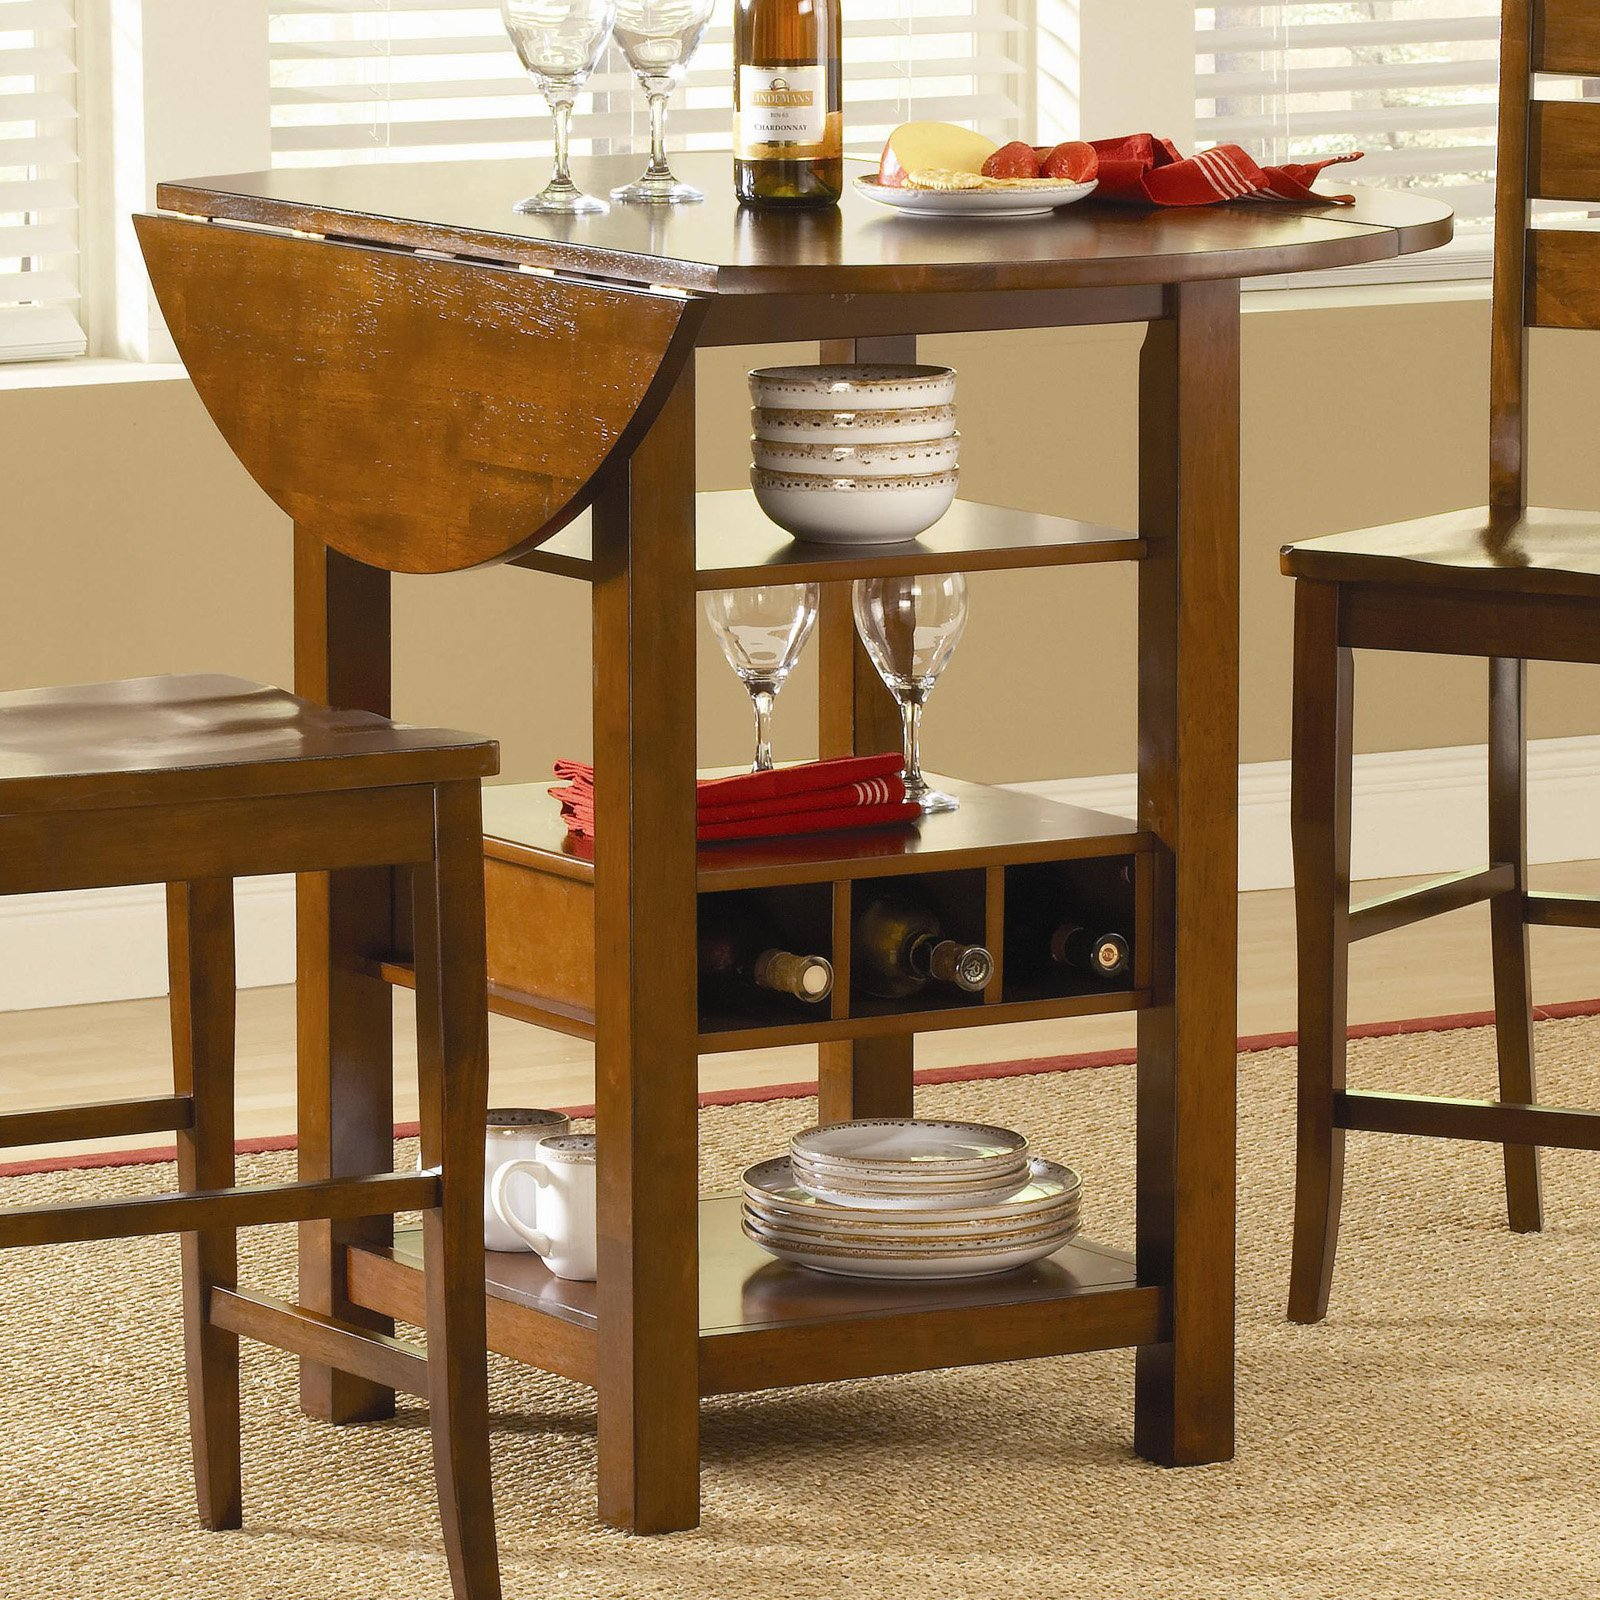 Captivating Ridgewood Counter Height Drop Leaf Dining Table With Storage   Walmart.com